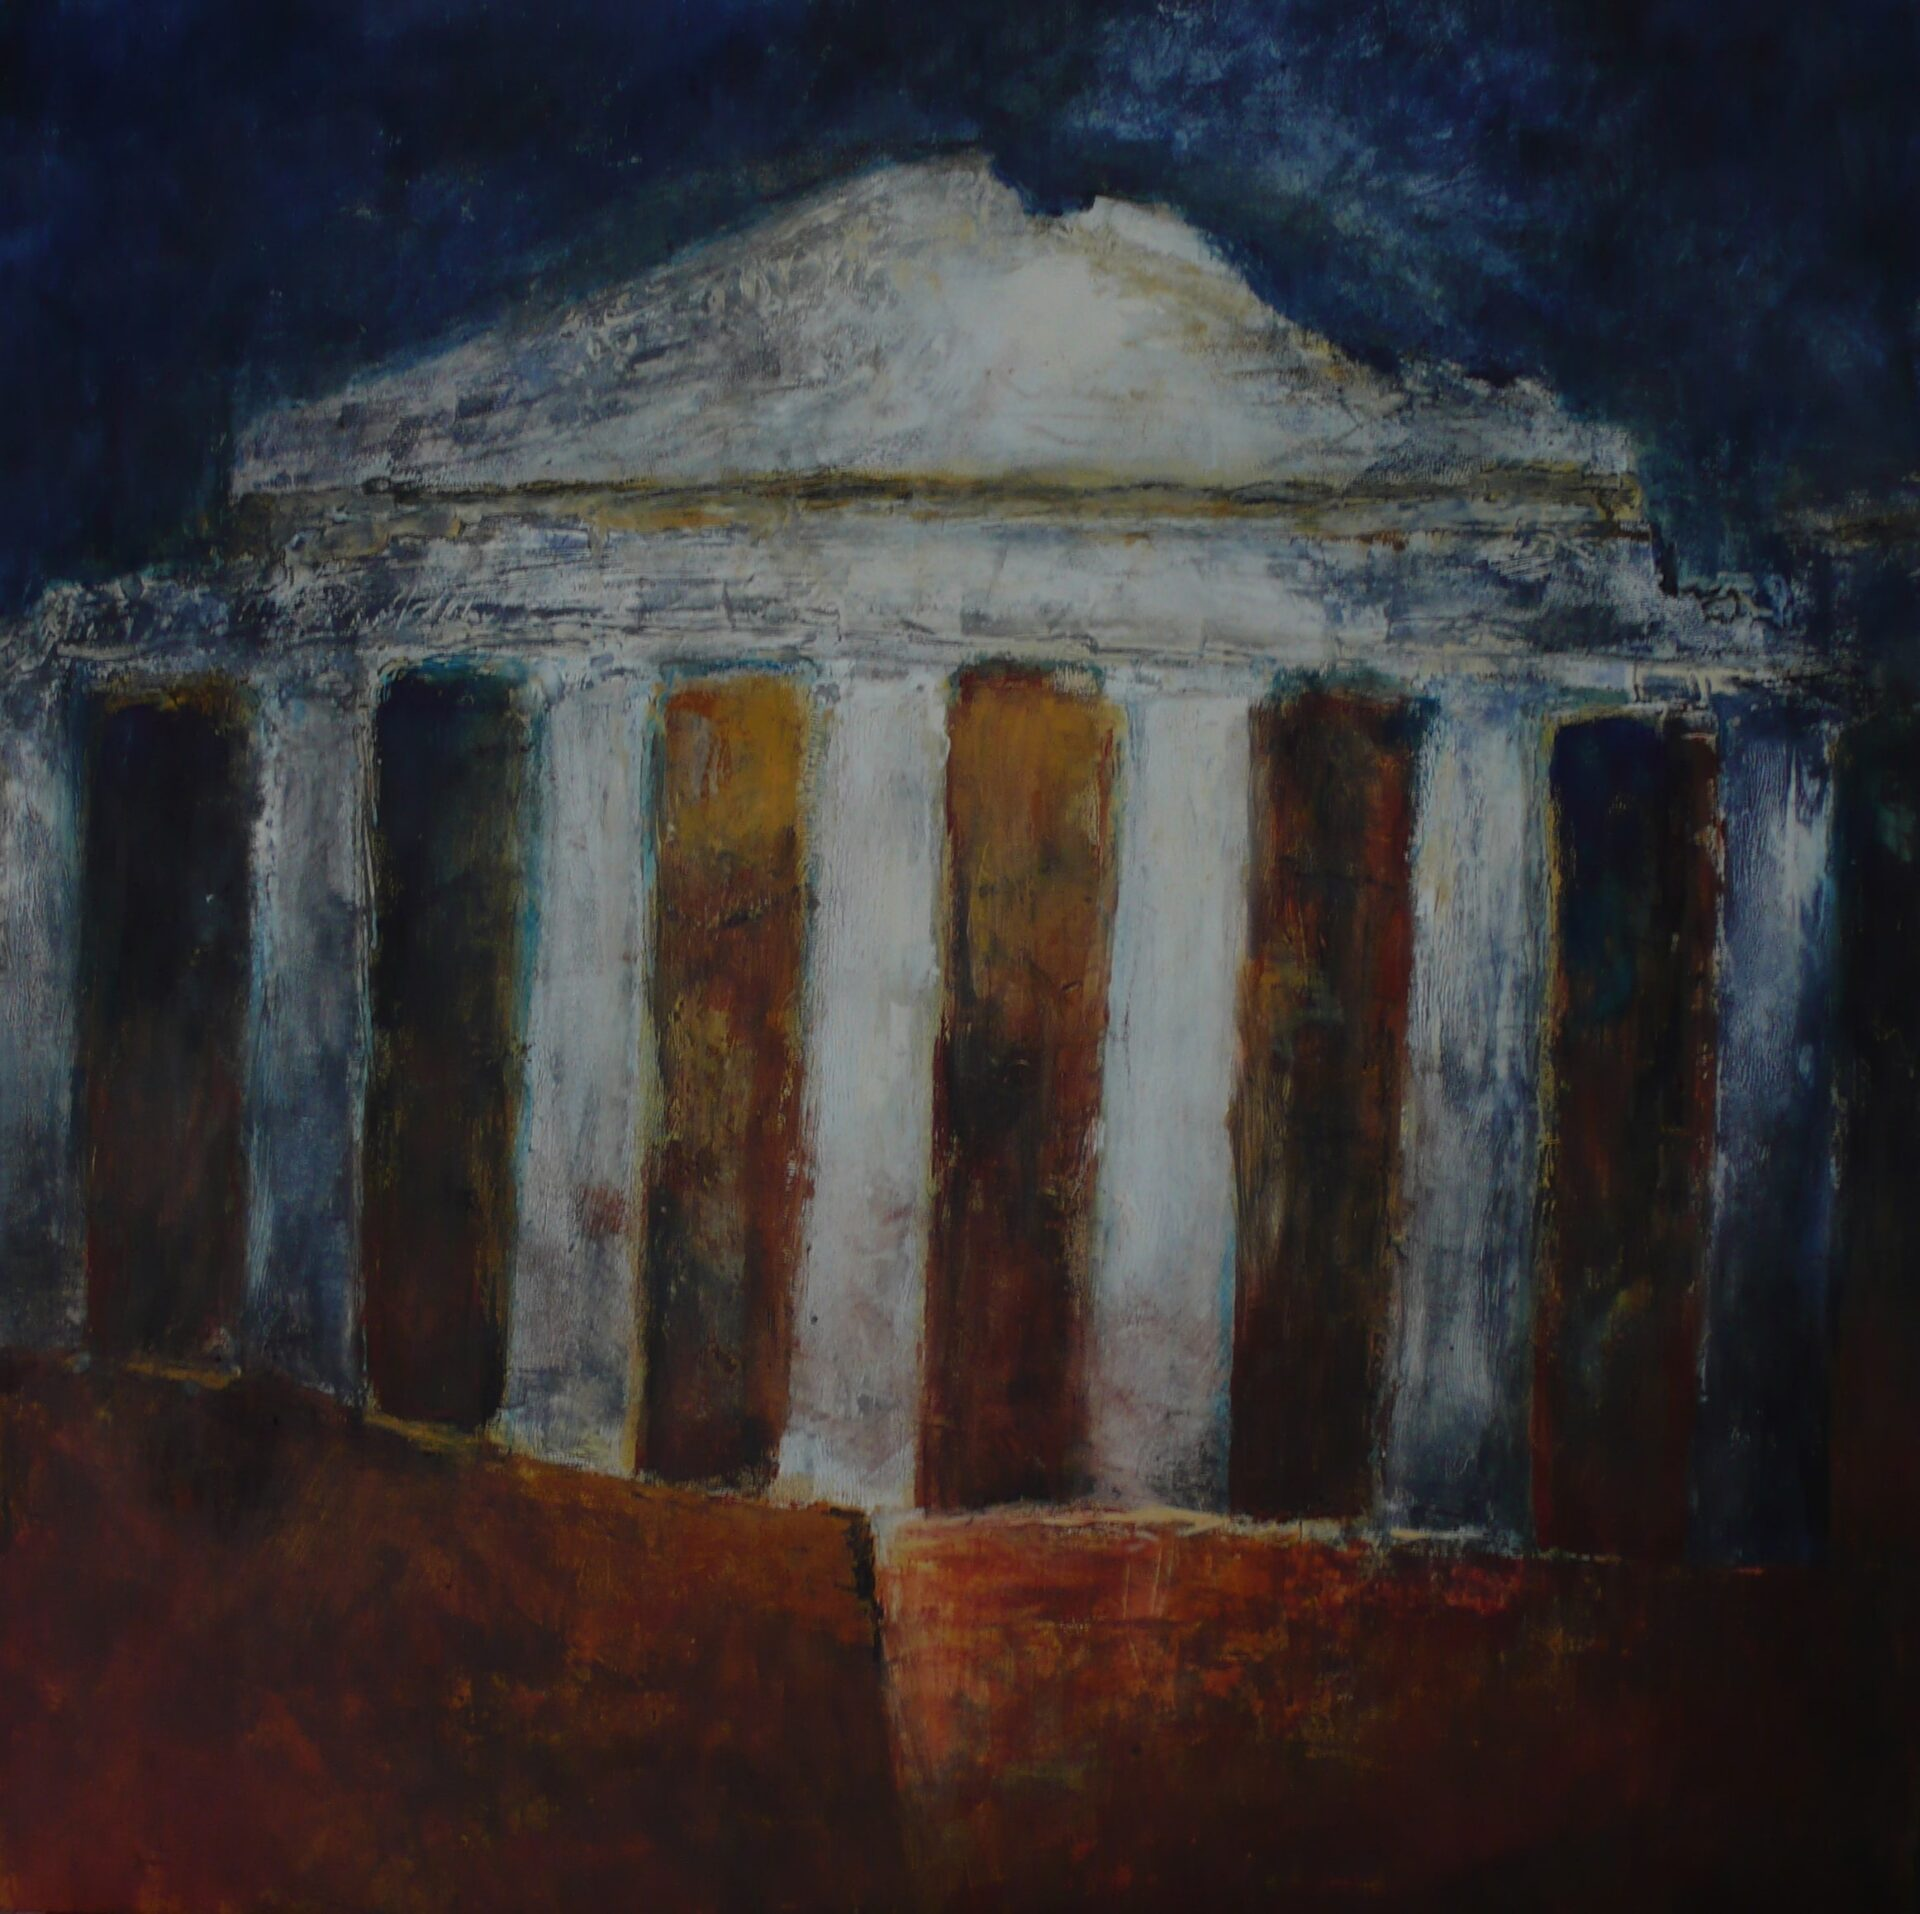 Acropoli - Oil and wax on MDF 70 x70